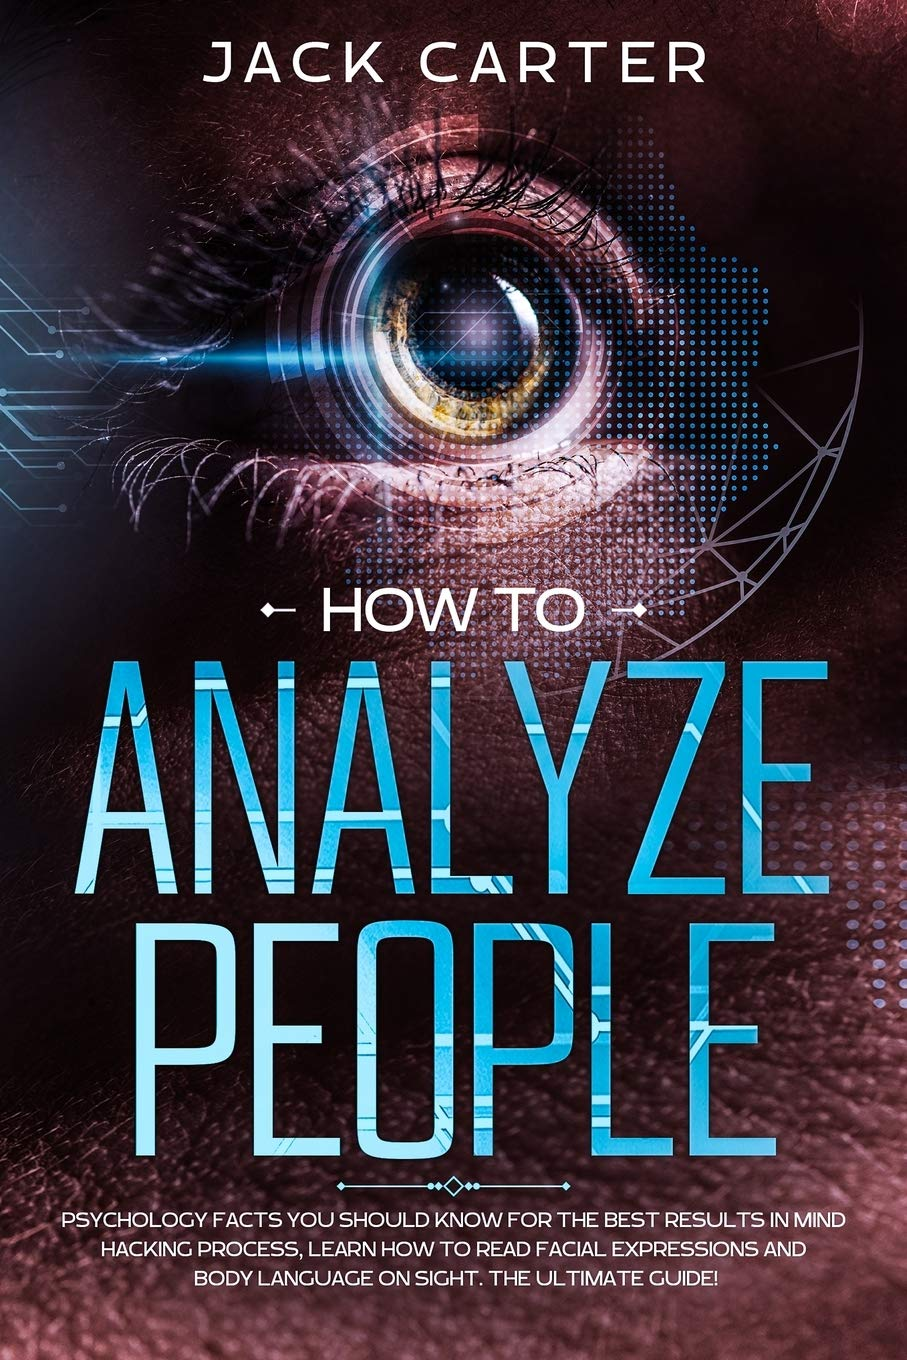 How to Analyze People: Psychology Facts You Should Know For The Best Results In Mind Hacking Process, Learn How To Read Facial Expressions And Body Language On Sight. The Ultimate Guide!